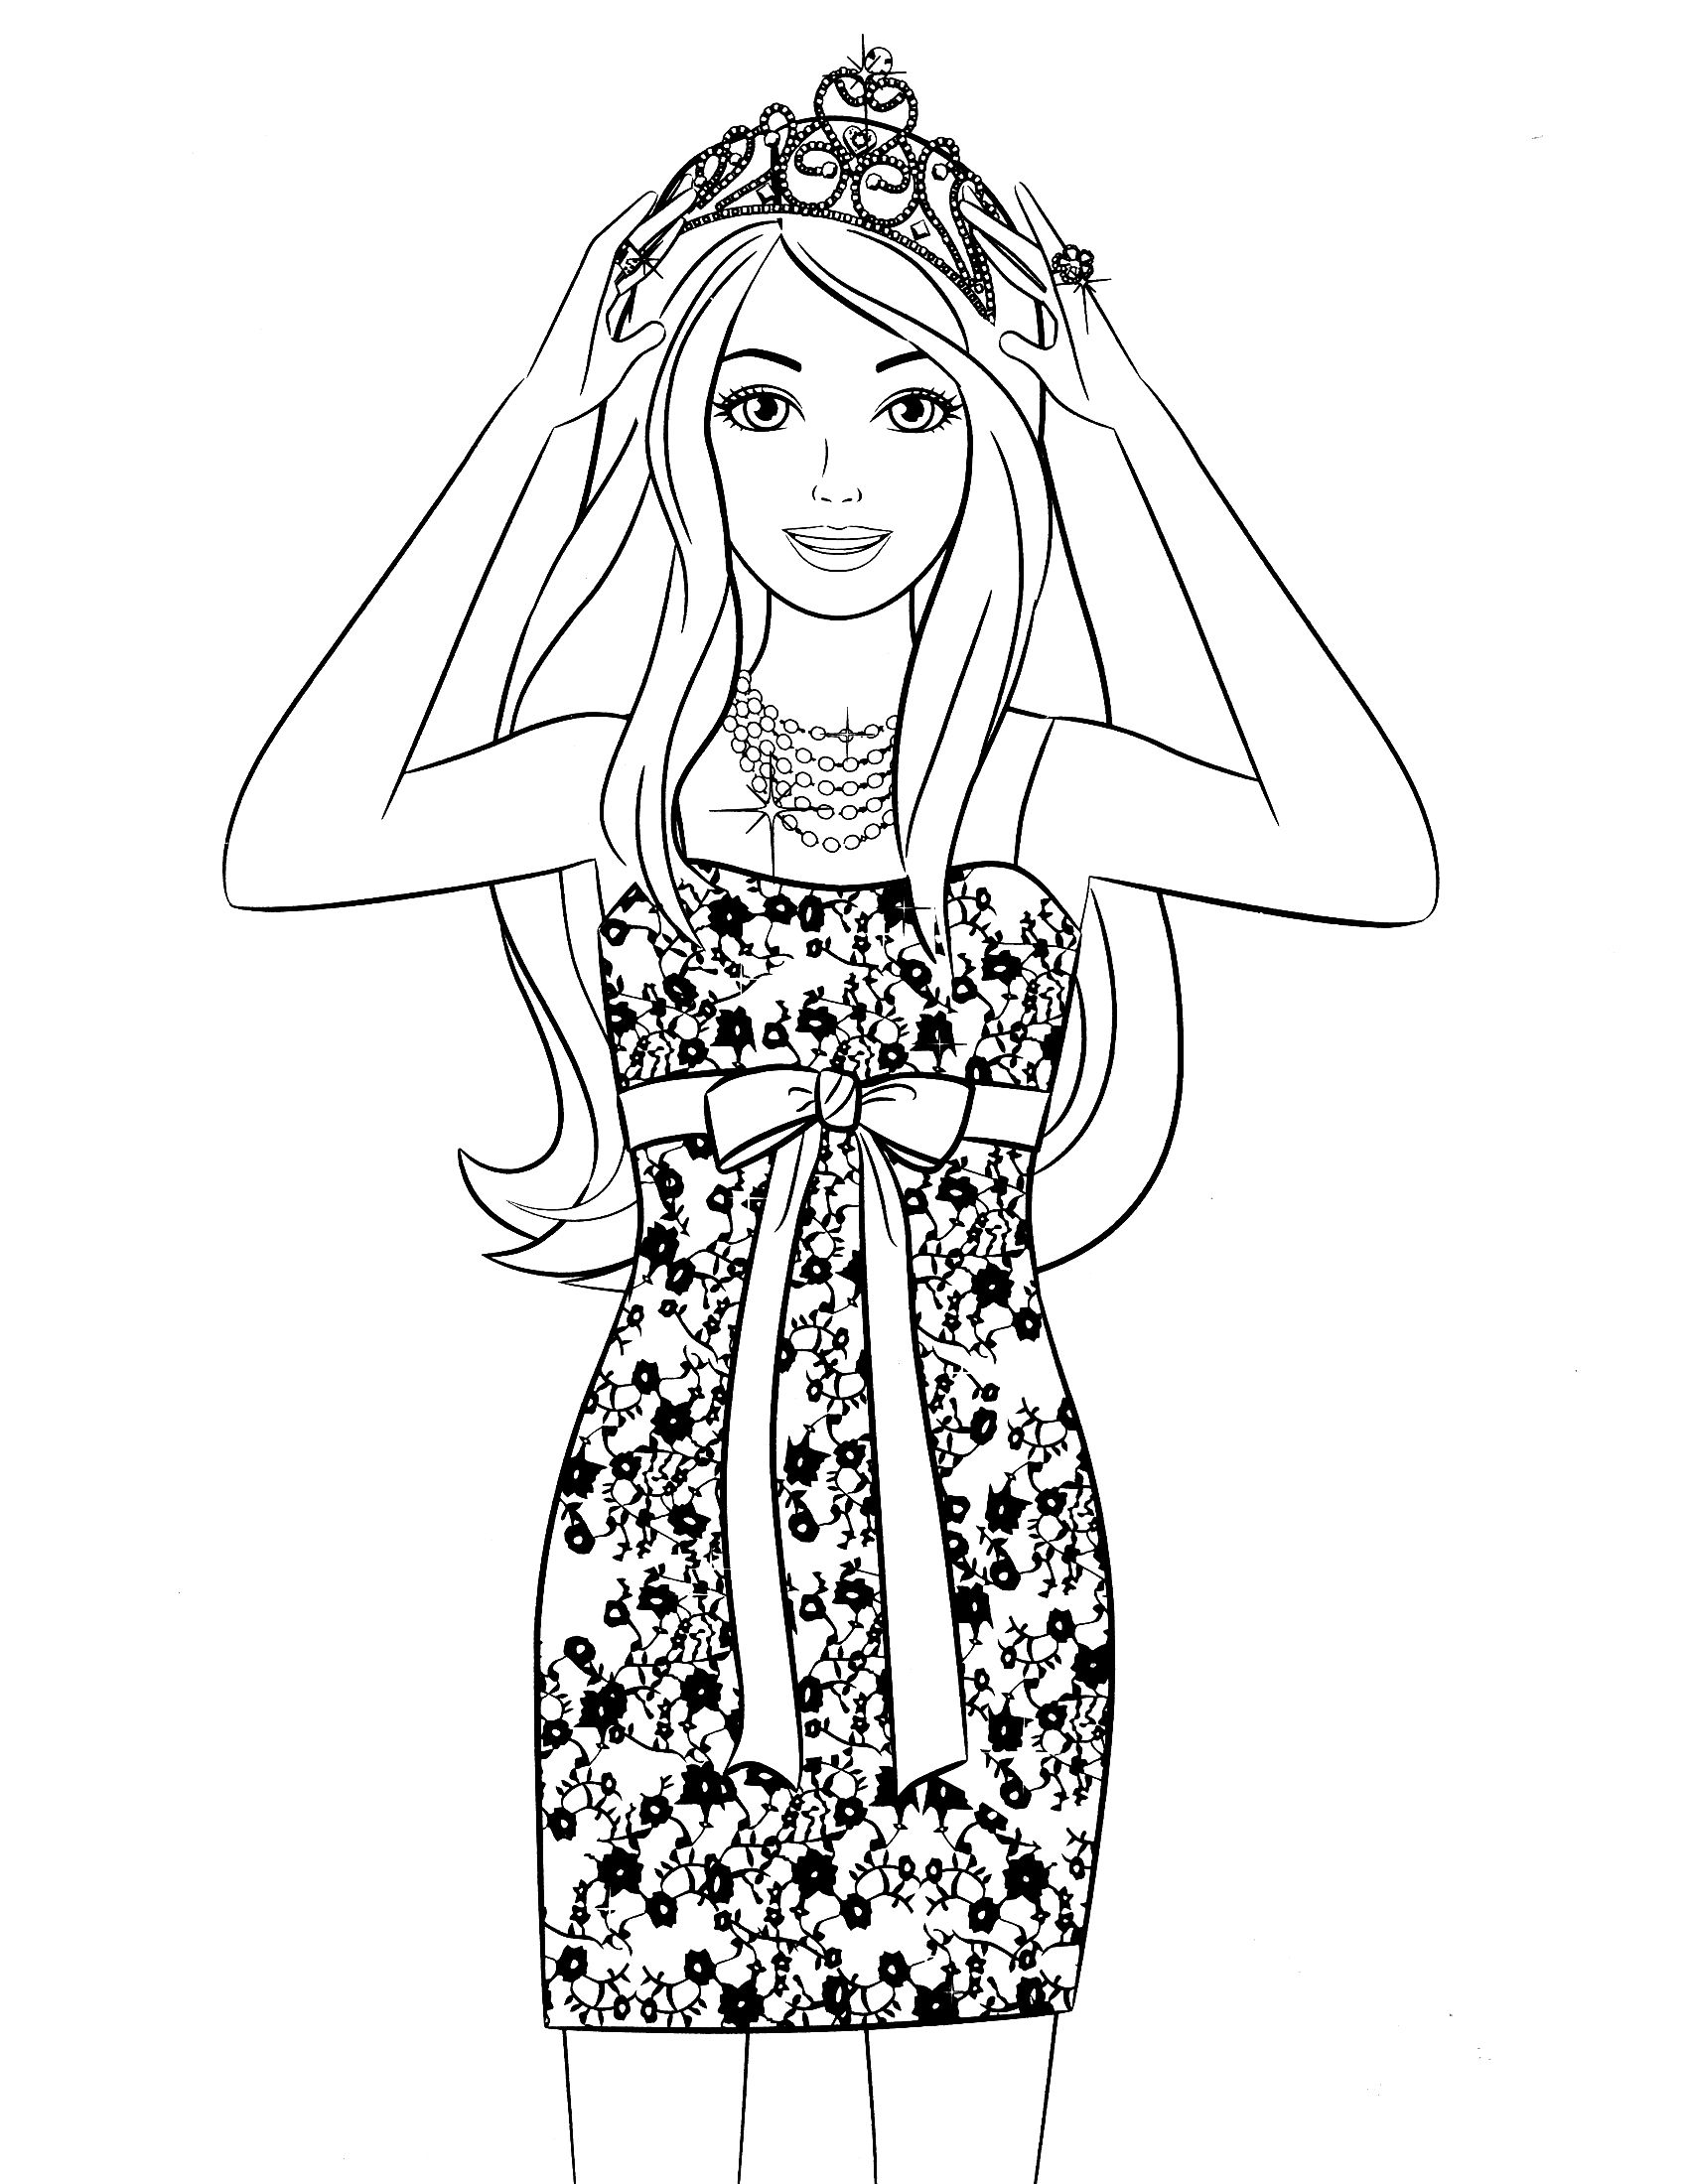 barbie coloring pages for girls barbie coloring page 89 - Barbie Coloring Page